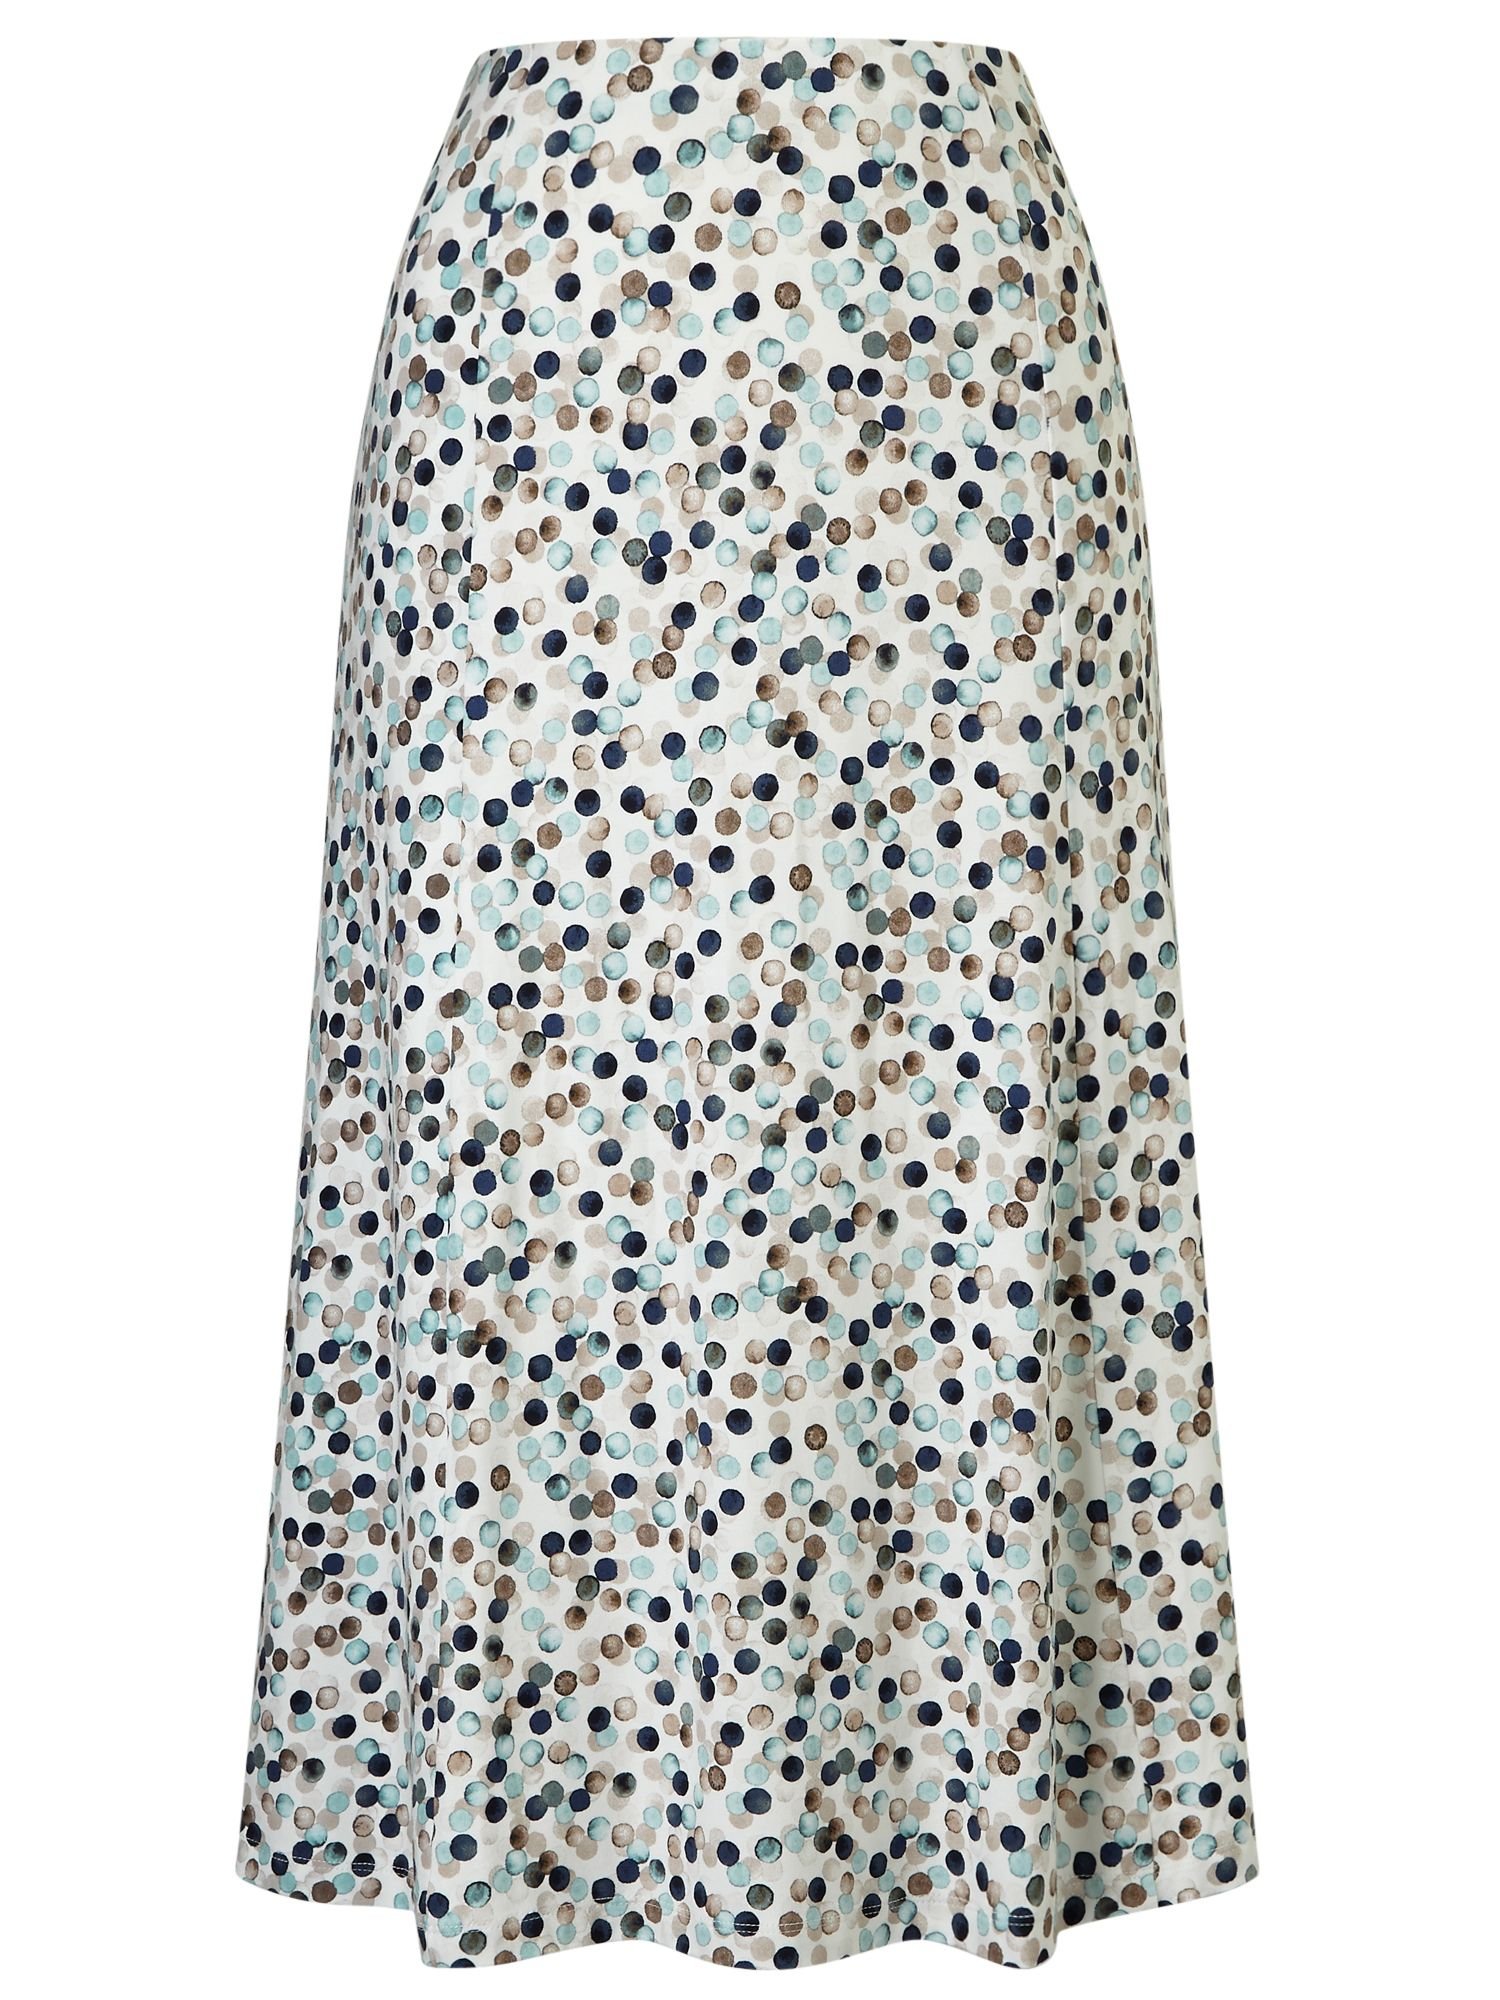 Eastex Painted Spot Jersey Skirt, Multi-coloured